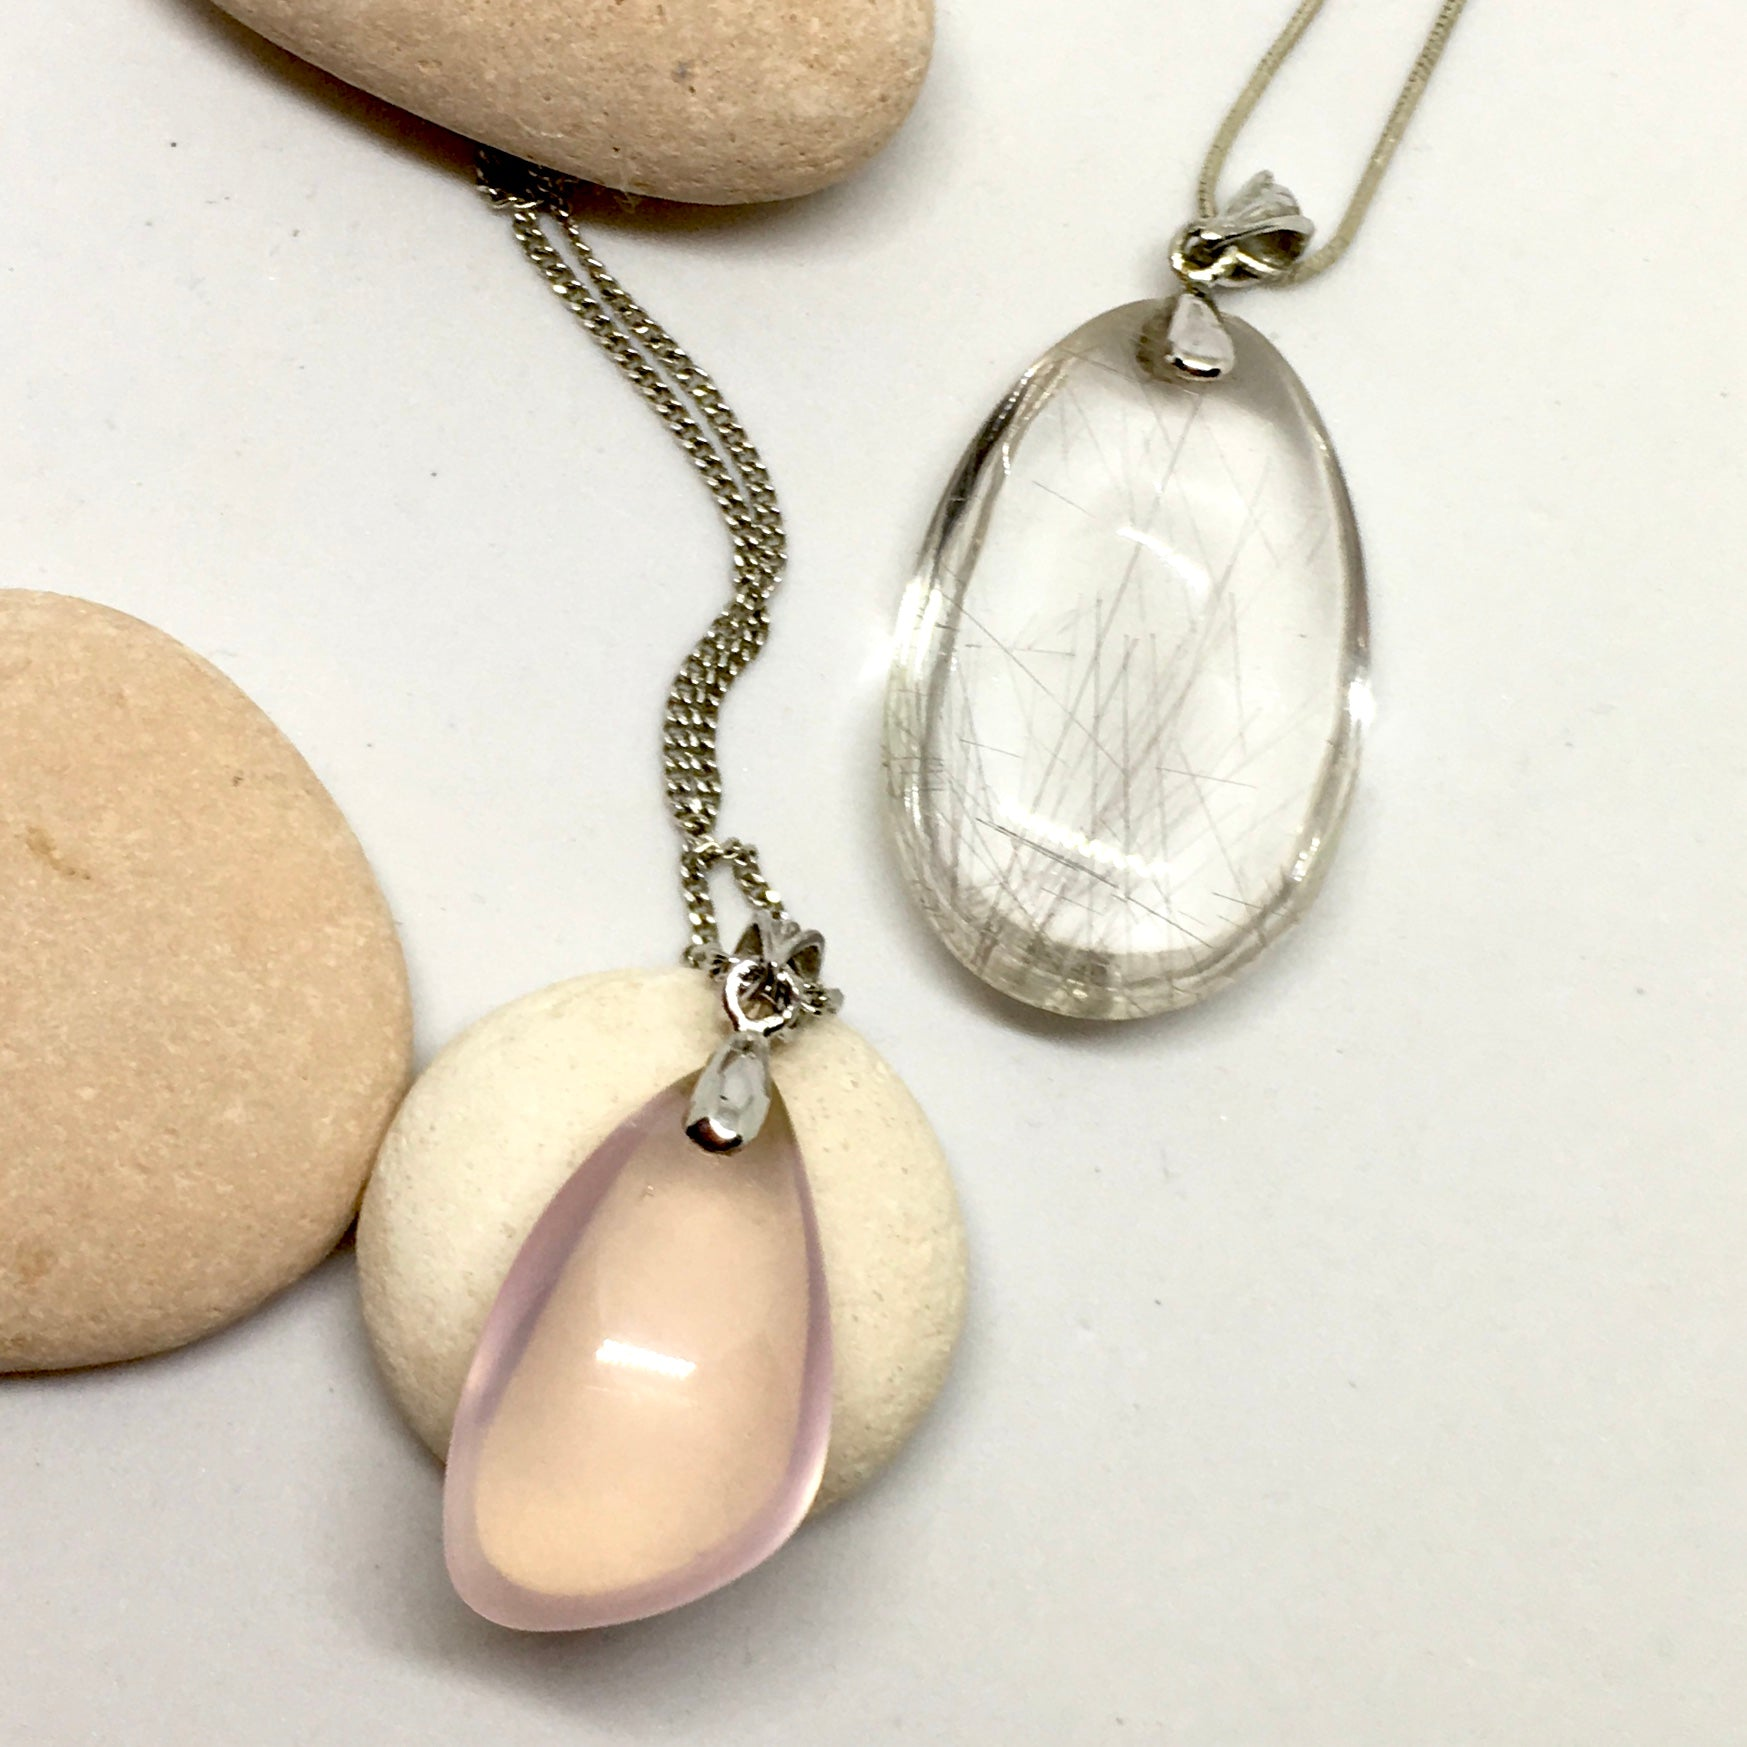 Pendant of Rose Quartz Quartz on a Silver Chain 2